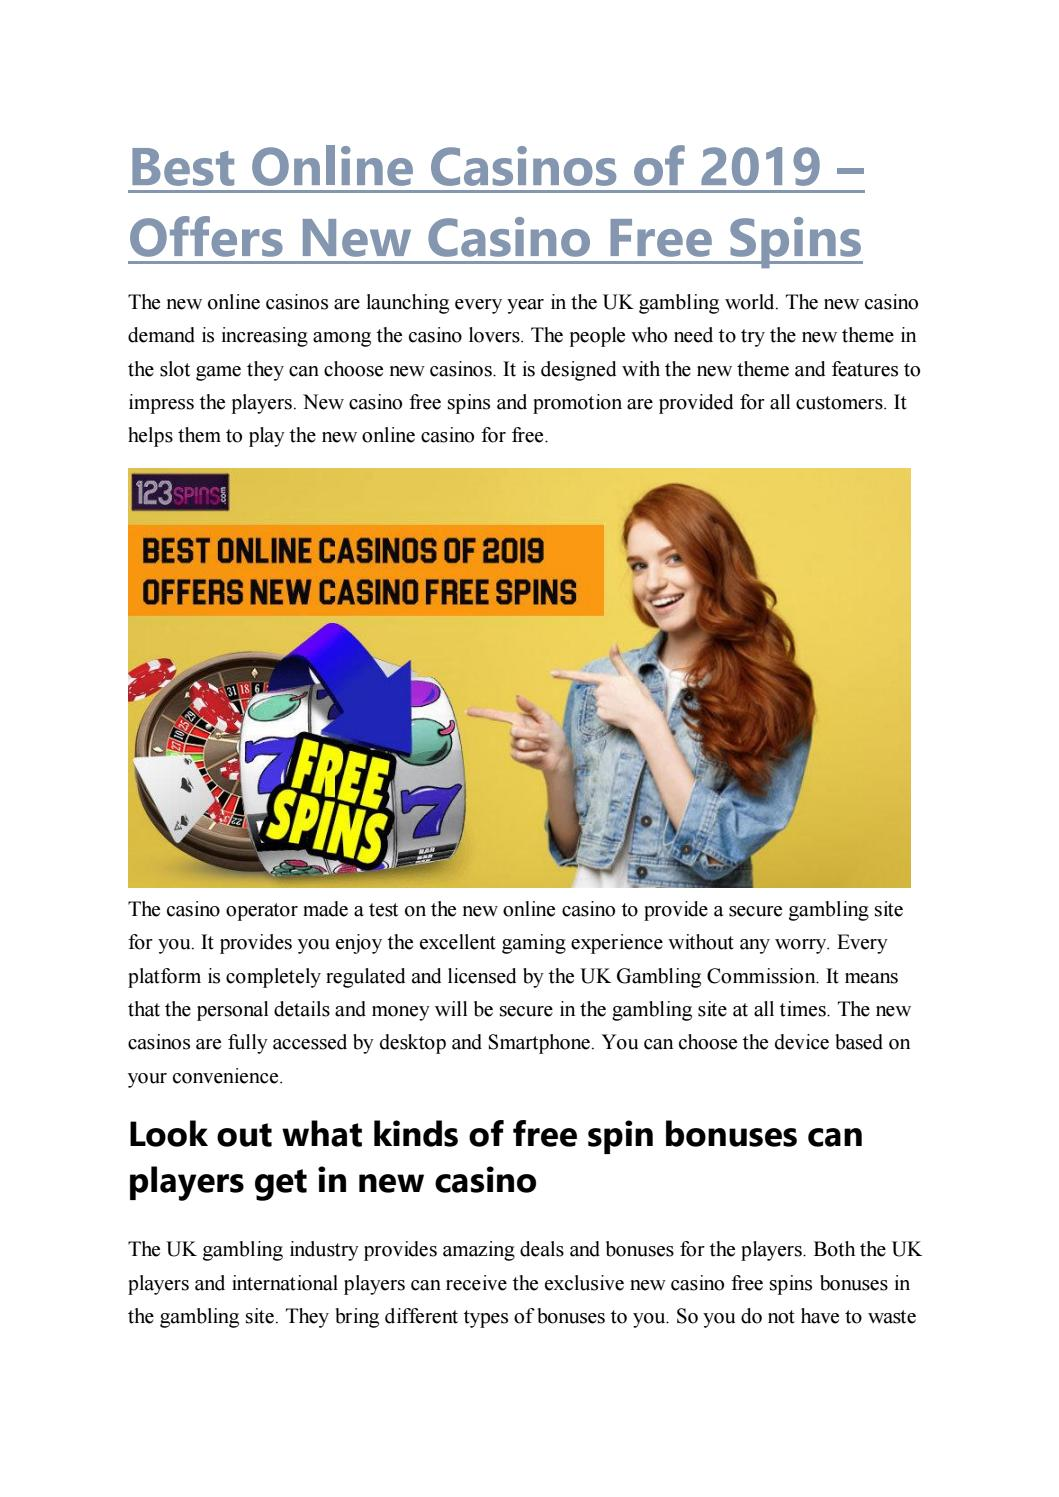 Best Online Casinos Of 2019 Offers New Casino Free Spins By 123